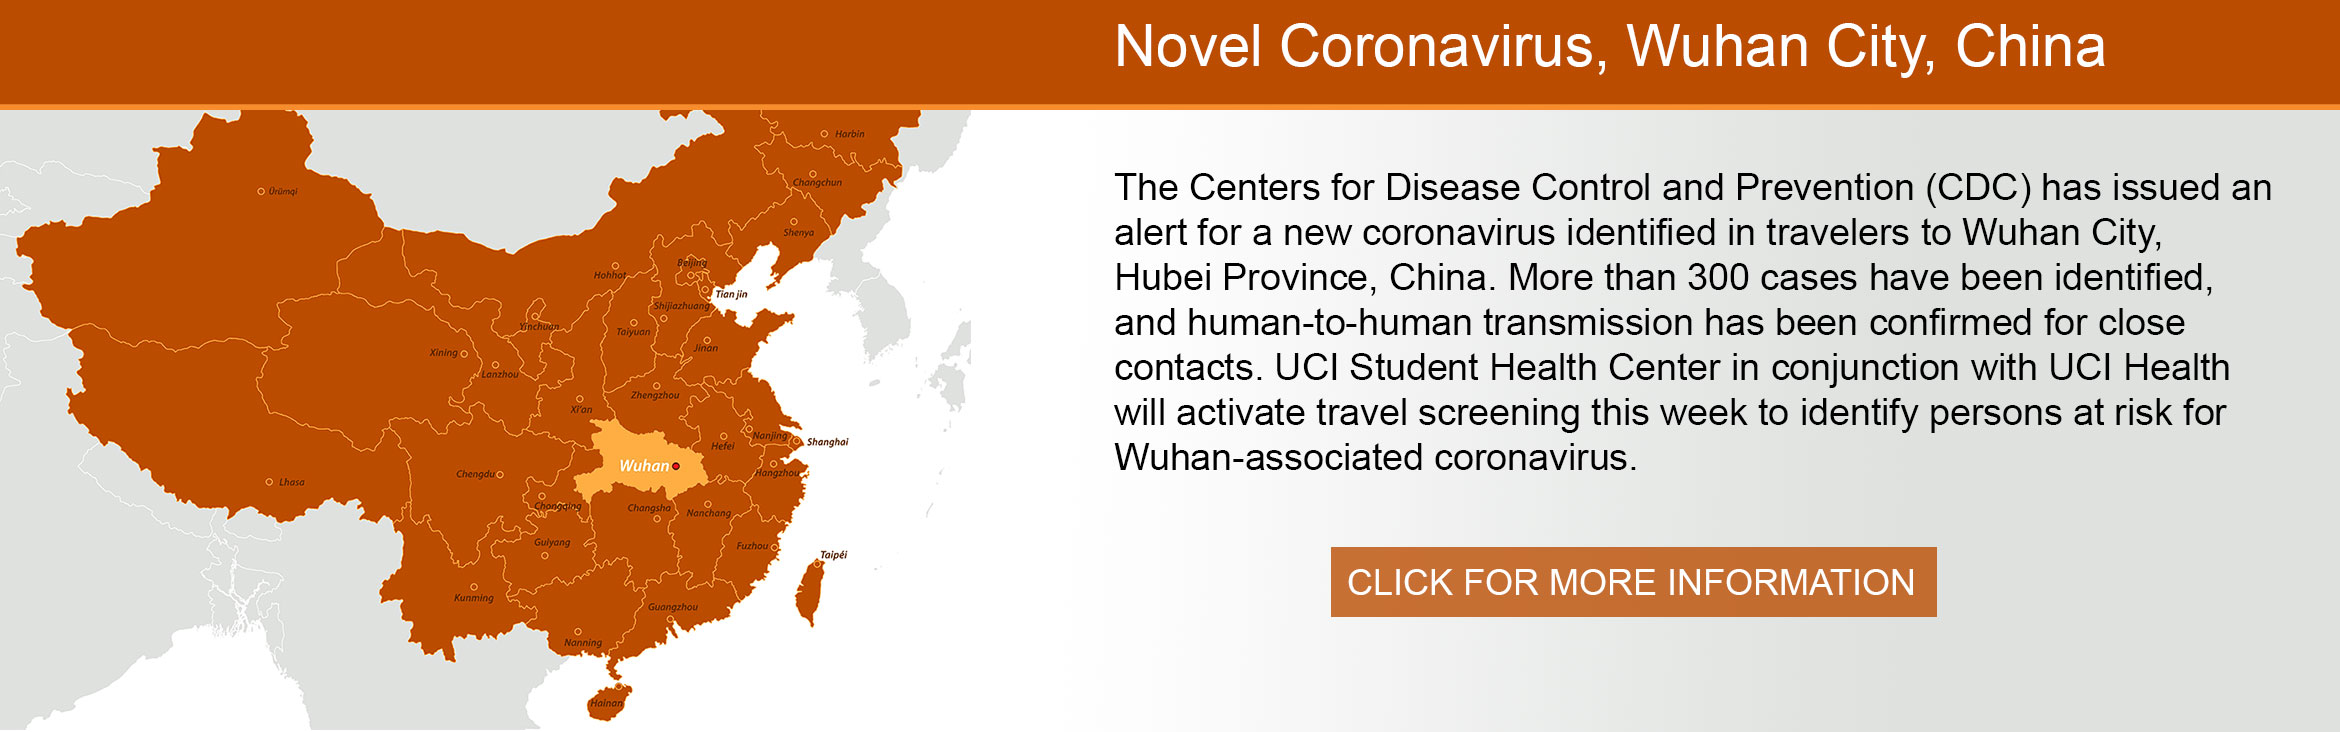 Novel Coronavirus, Wuhan City, China, The Centers for Disease Control and Prevention (CDC) has issued an  alert for a new coronavirus identified in travelers to Wuhan City,  Hubei Province, China. More than 300 cases have been identified,  and human-to-hu